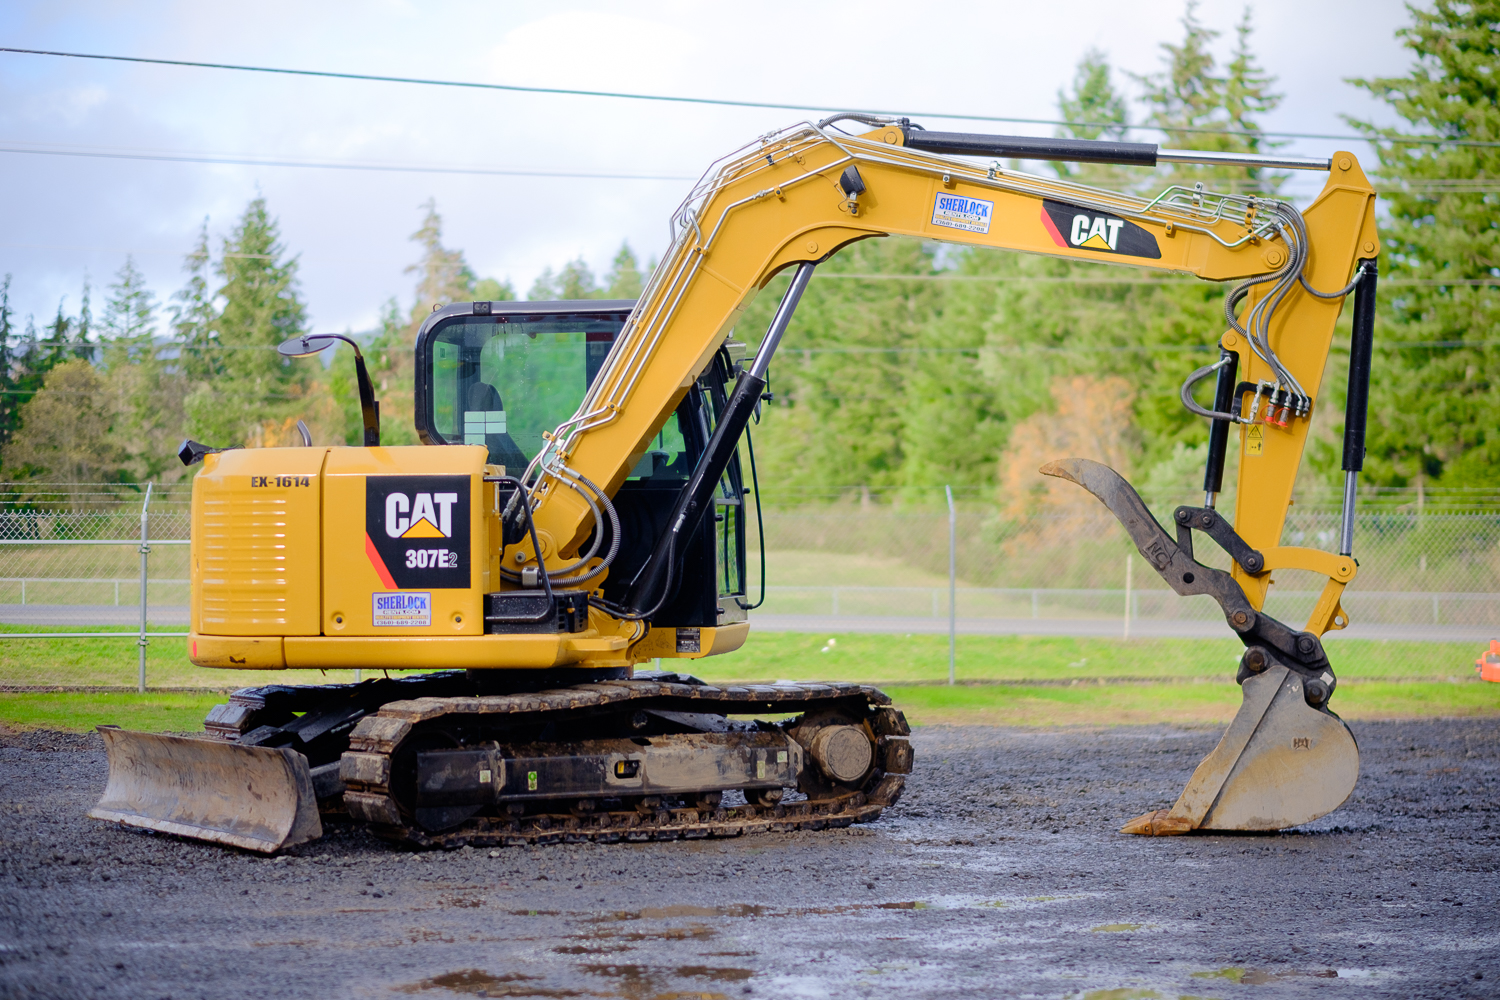 cat 307 e2 excavator 17 000 lbs class sherlock equipment. Black Bedroom Furniture Sets. Home Design Ideas